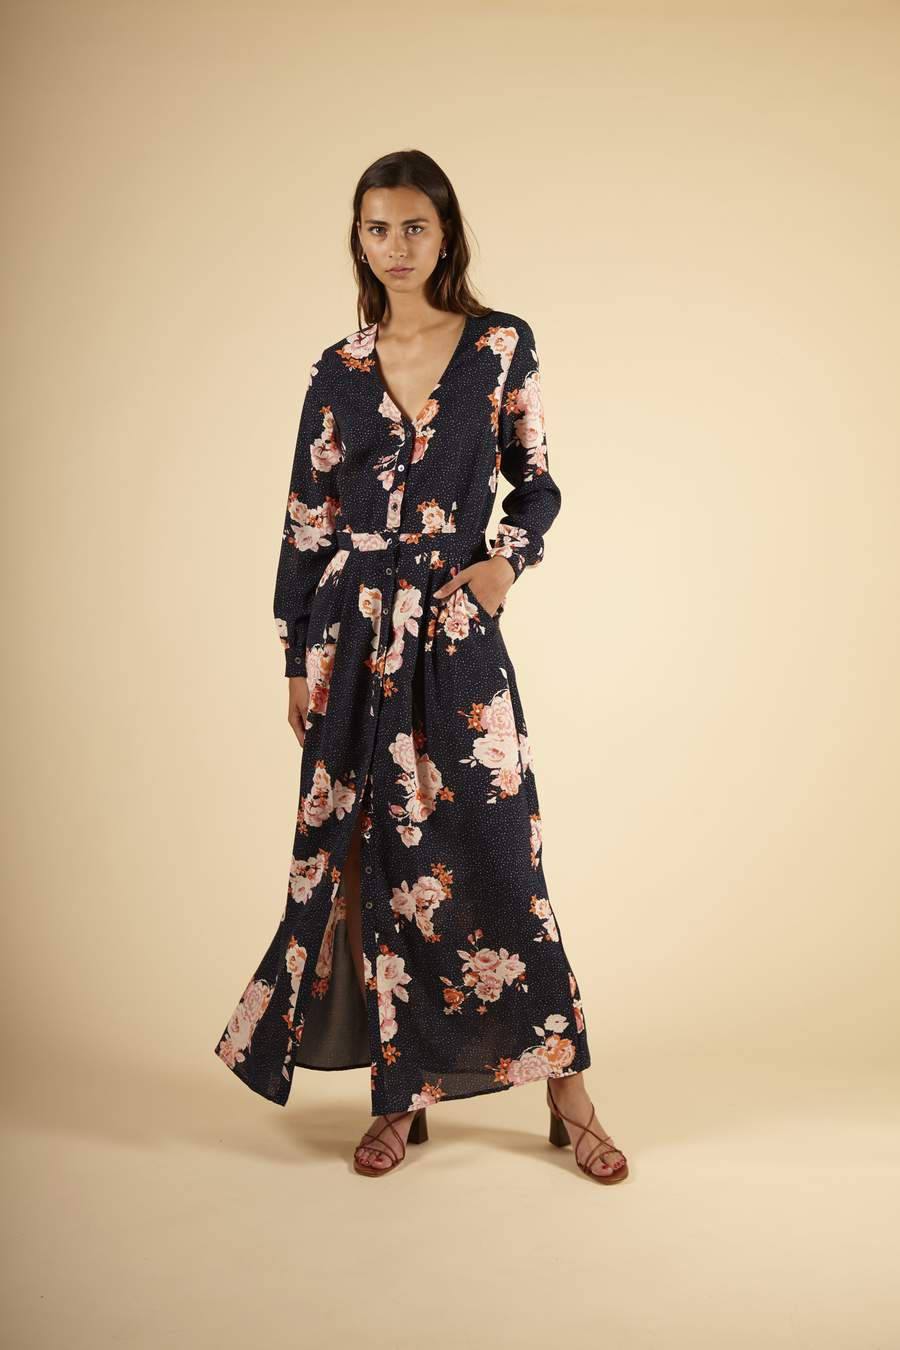 Adelys Dress in Navy Floral Print